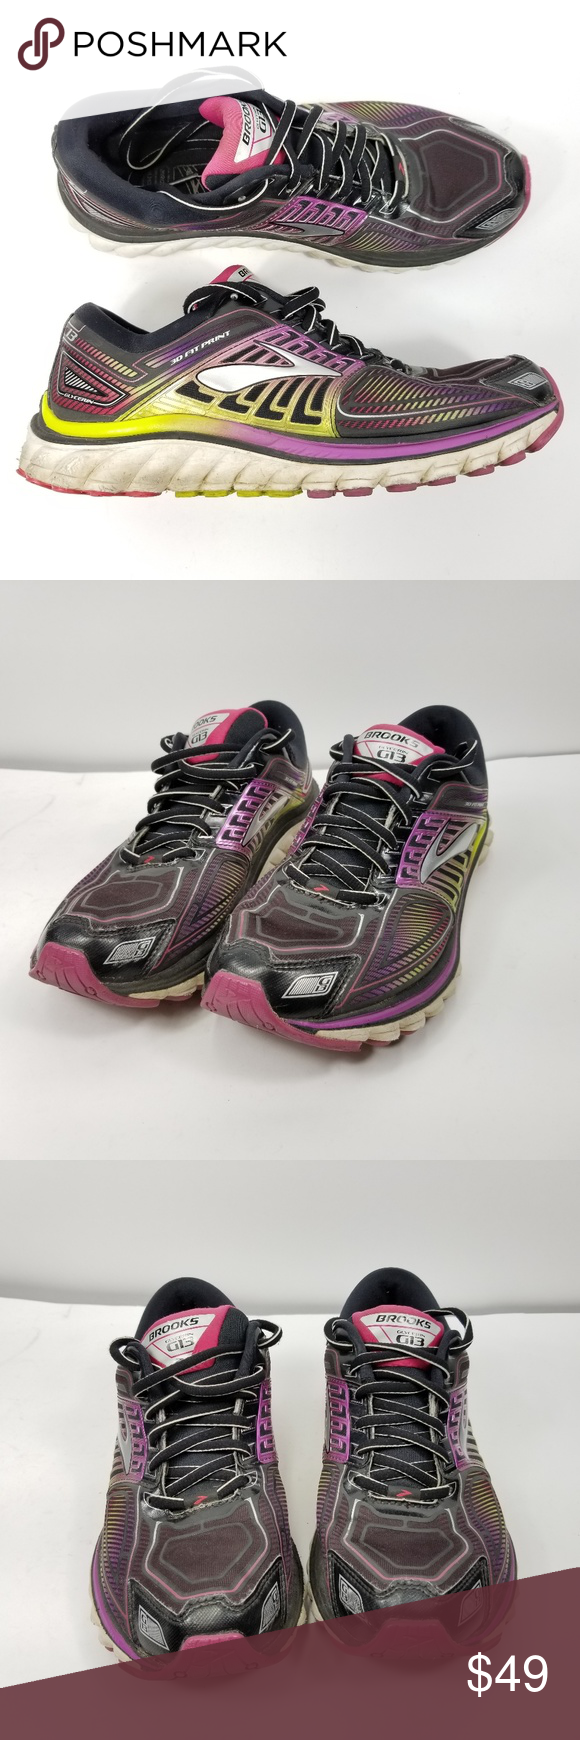 2e00de6bcb0 Brooks Glycerin 13 Running Shoes Sz 9 B MultiColor Brooks Glycerin 13  Running Shoes Sz 9 B Black Multi Color 1201971B019 Womens Fair Condition!